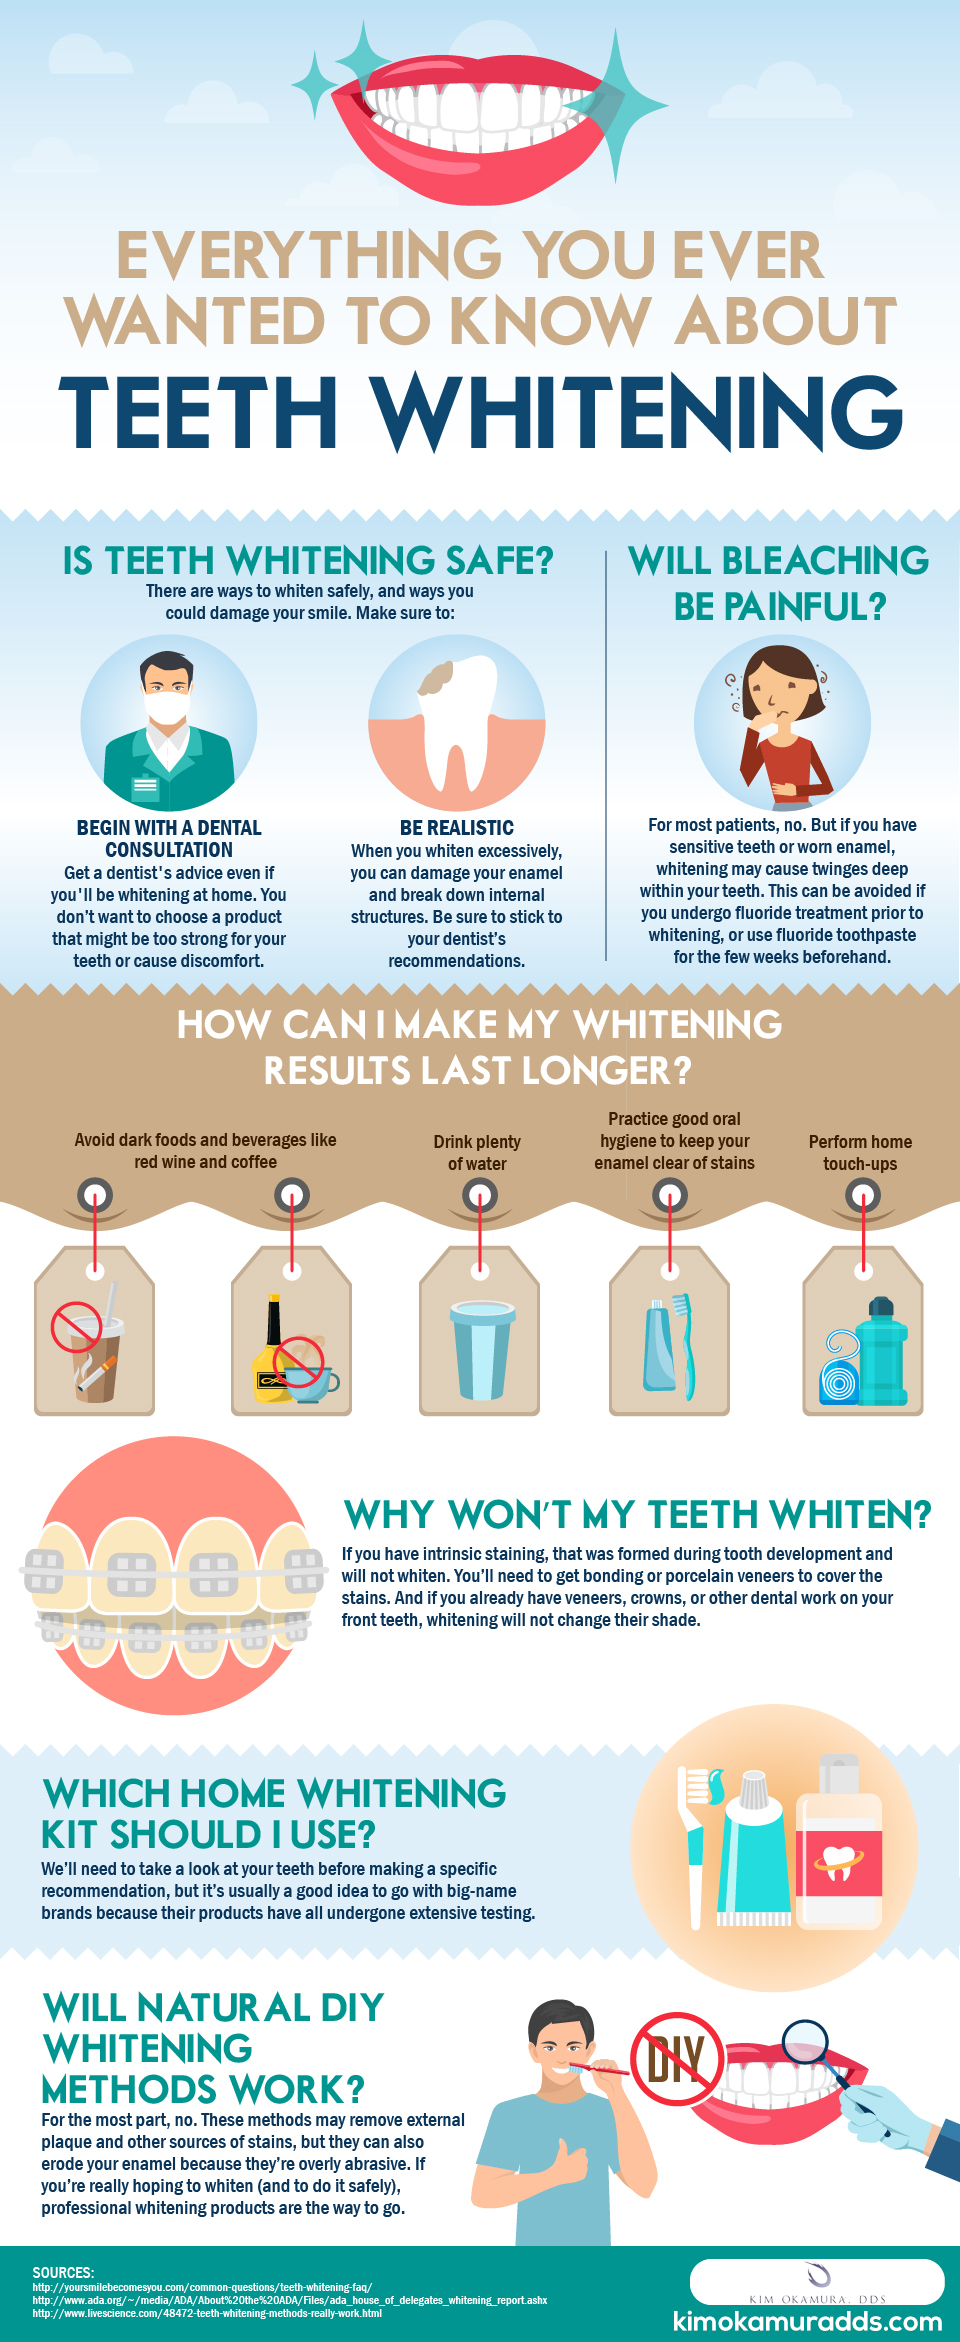 Check out this visual guide to teeth whitening kim okamura dds infographic most asked teeth whitening questions solutioingenieria Images